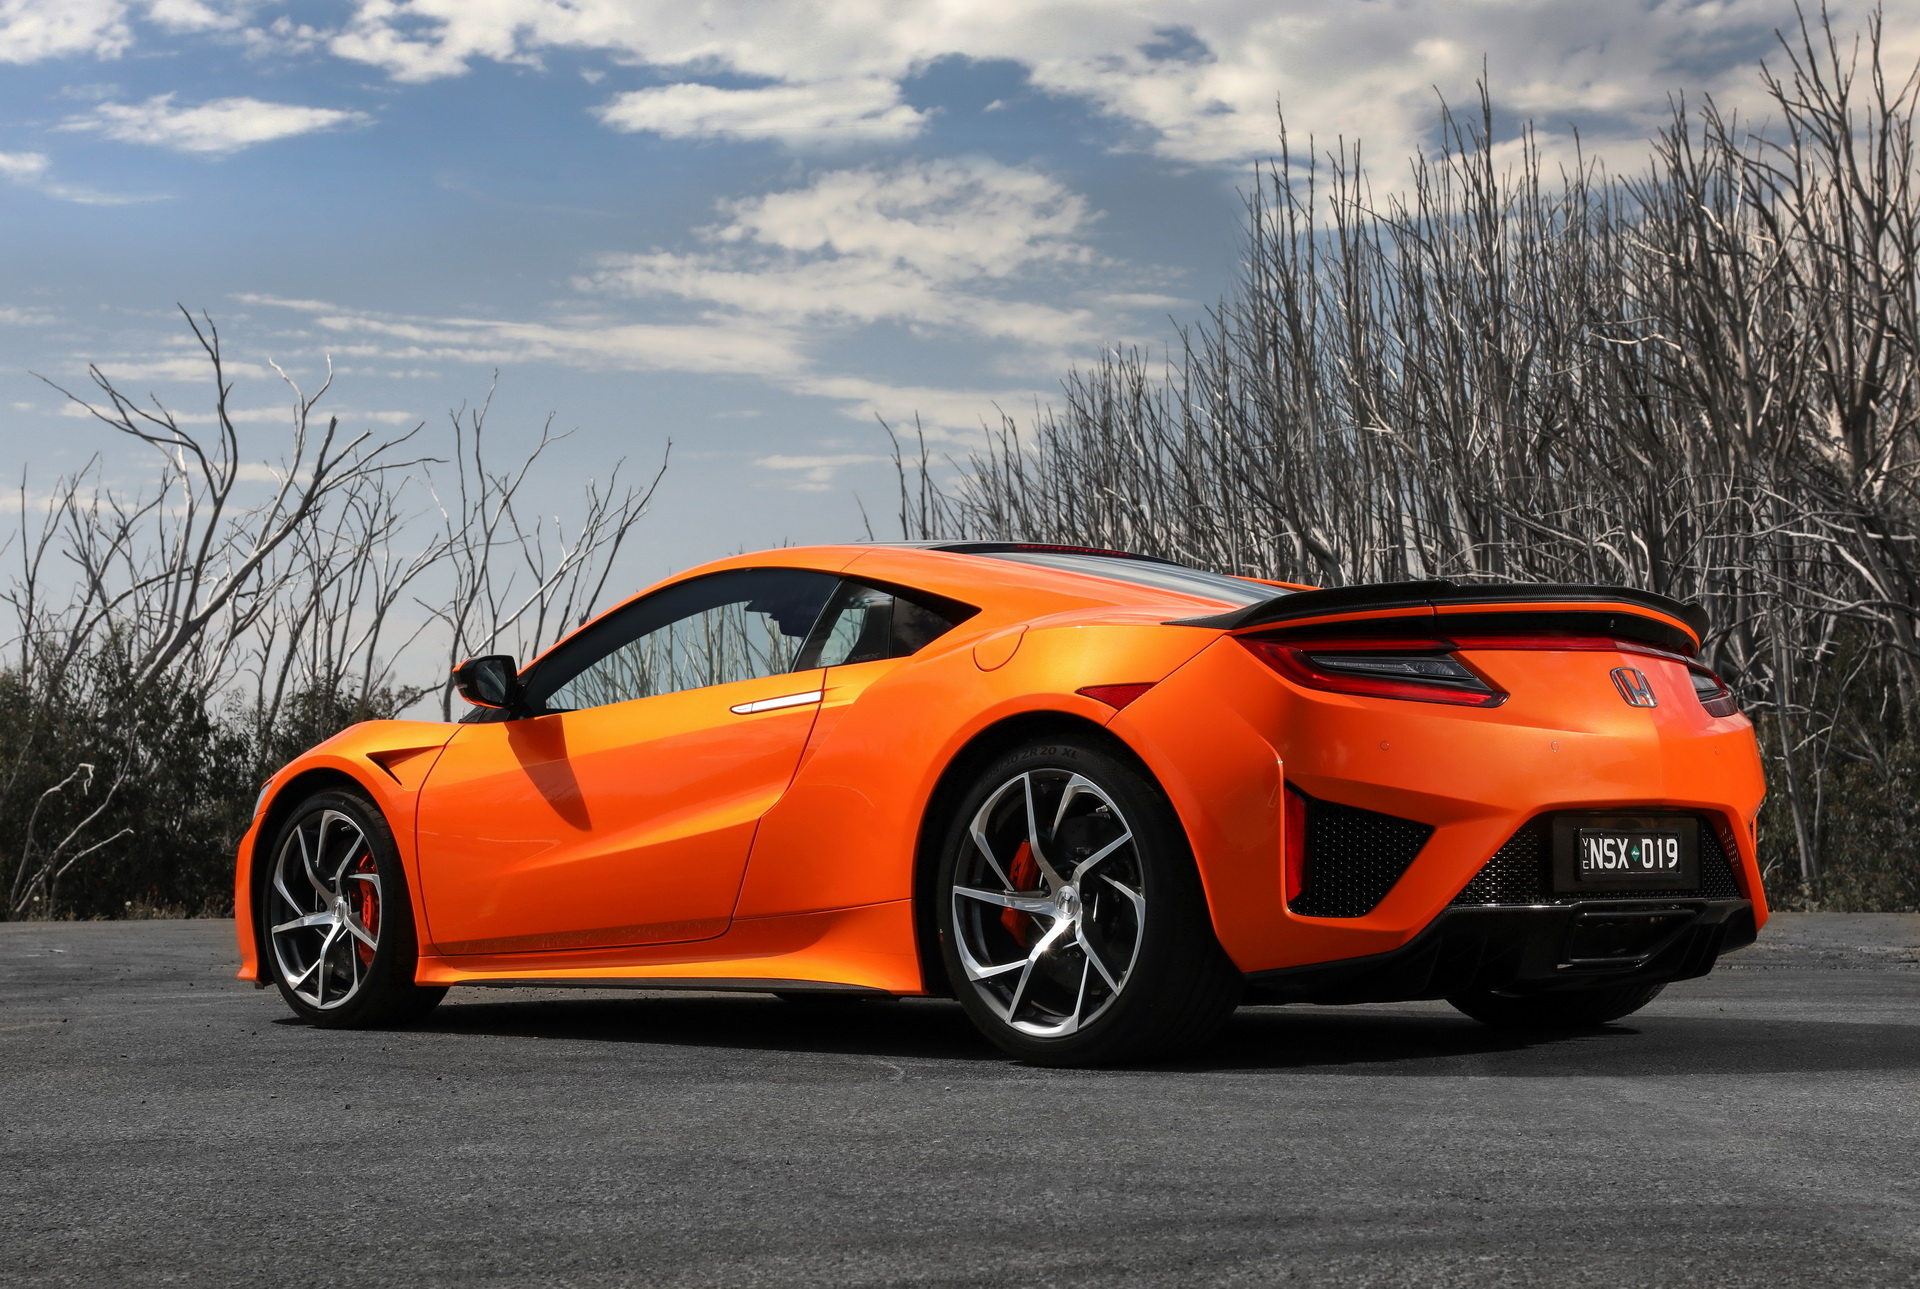 Honda has ceased attempts to sell its NSX supercar Down Under after abysmal sales two years in a row: literally three units in 2019 and zero since.